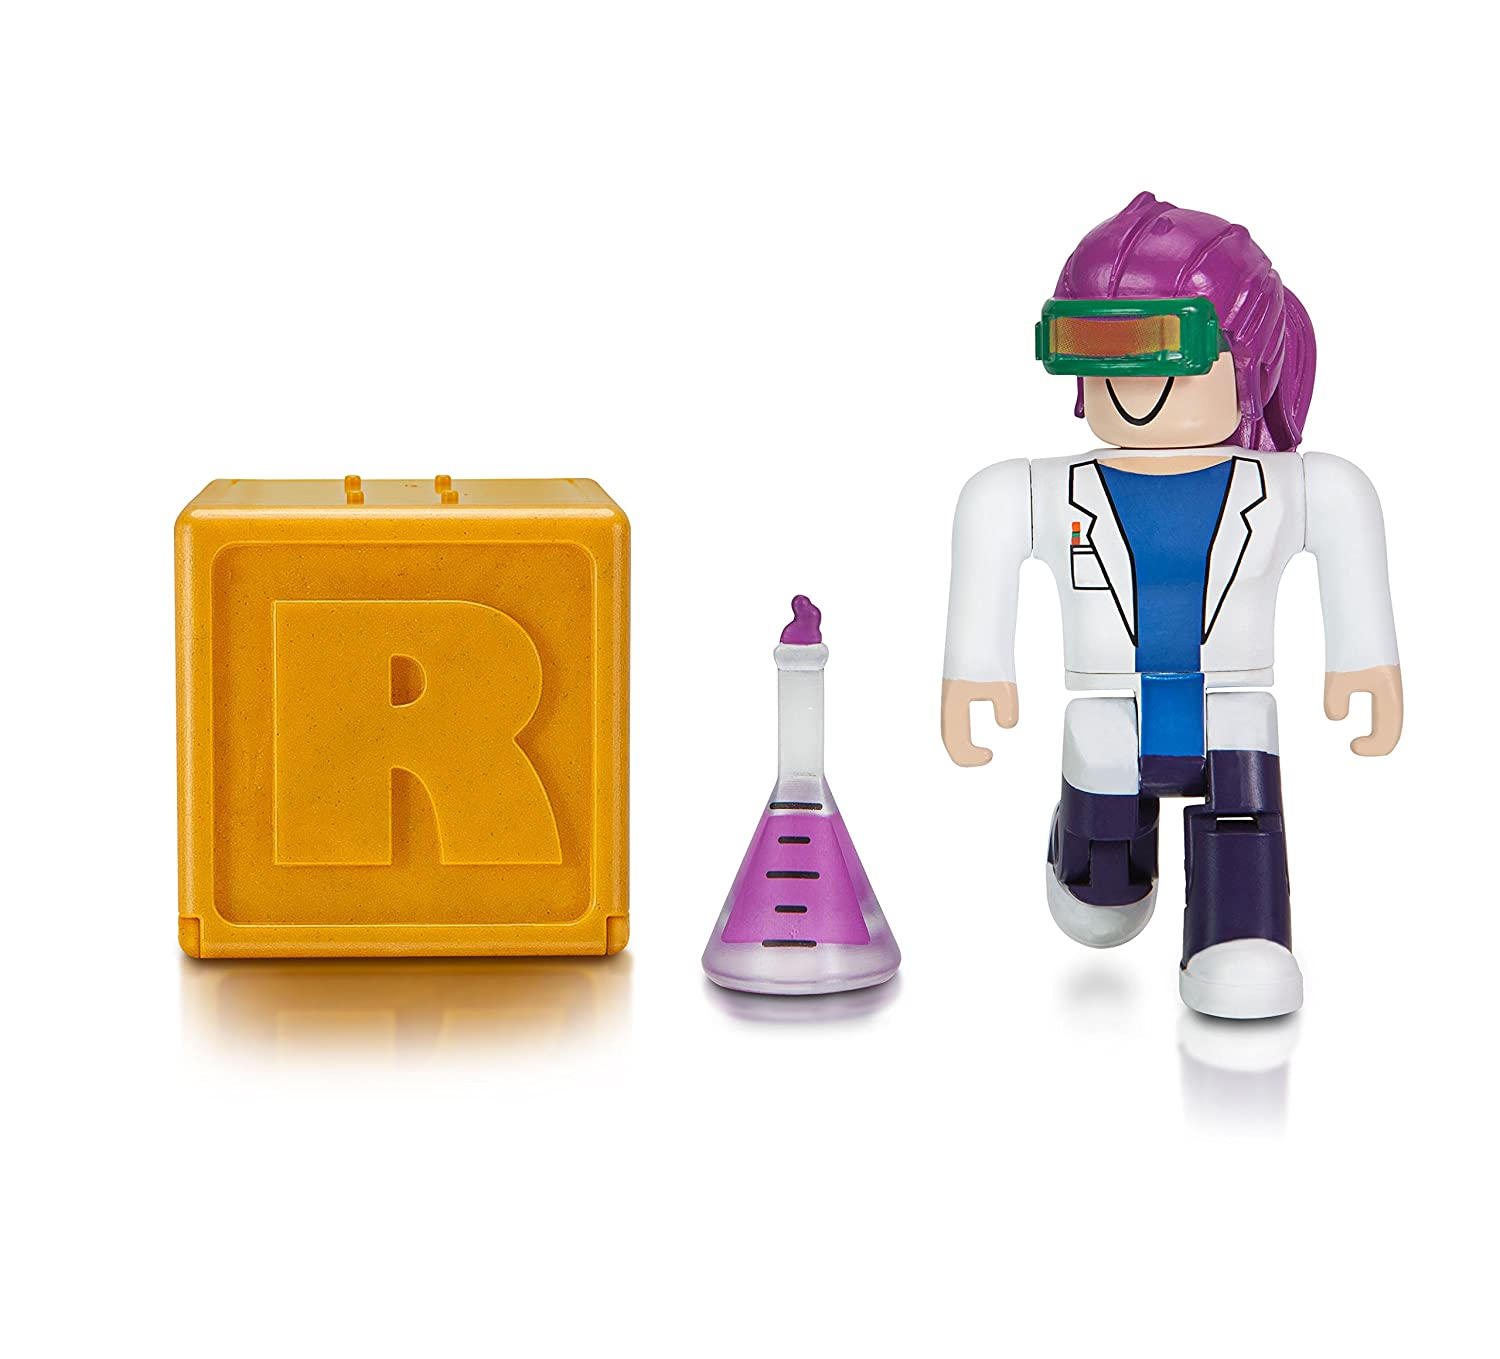 Amazoncom Serie Roblox Celebrity Collection Toys Games - po roblox summoner tycoon 6 pack toys games bricks